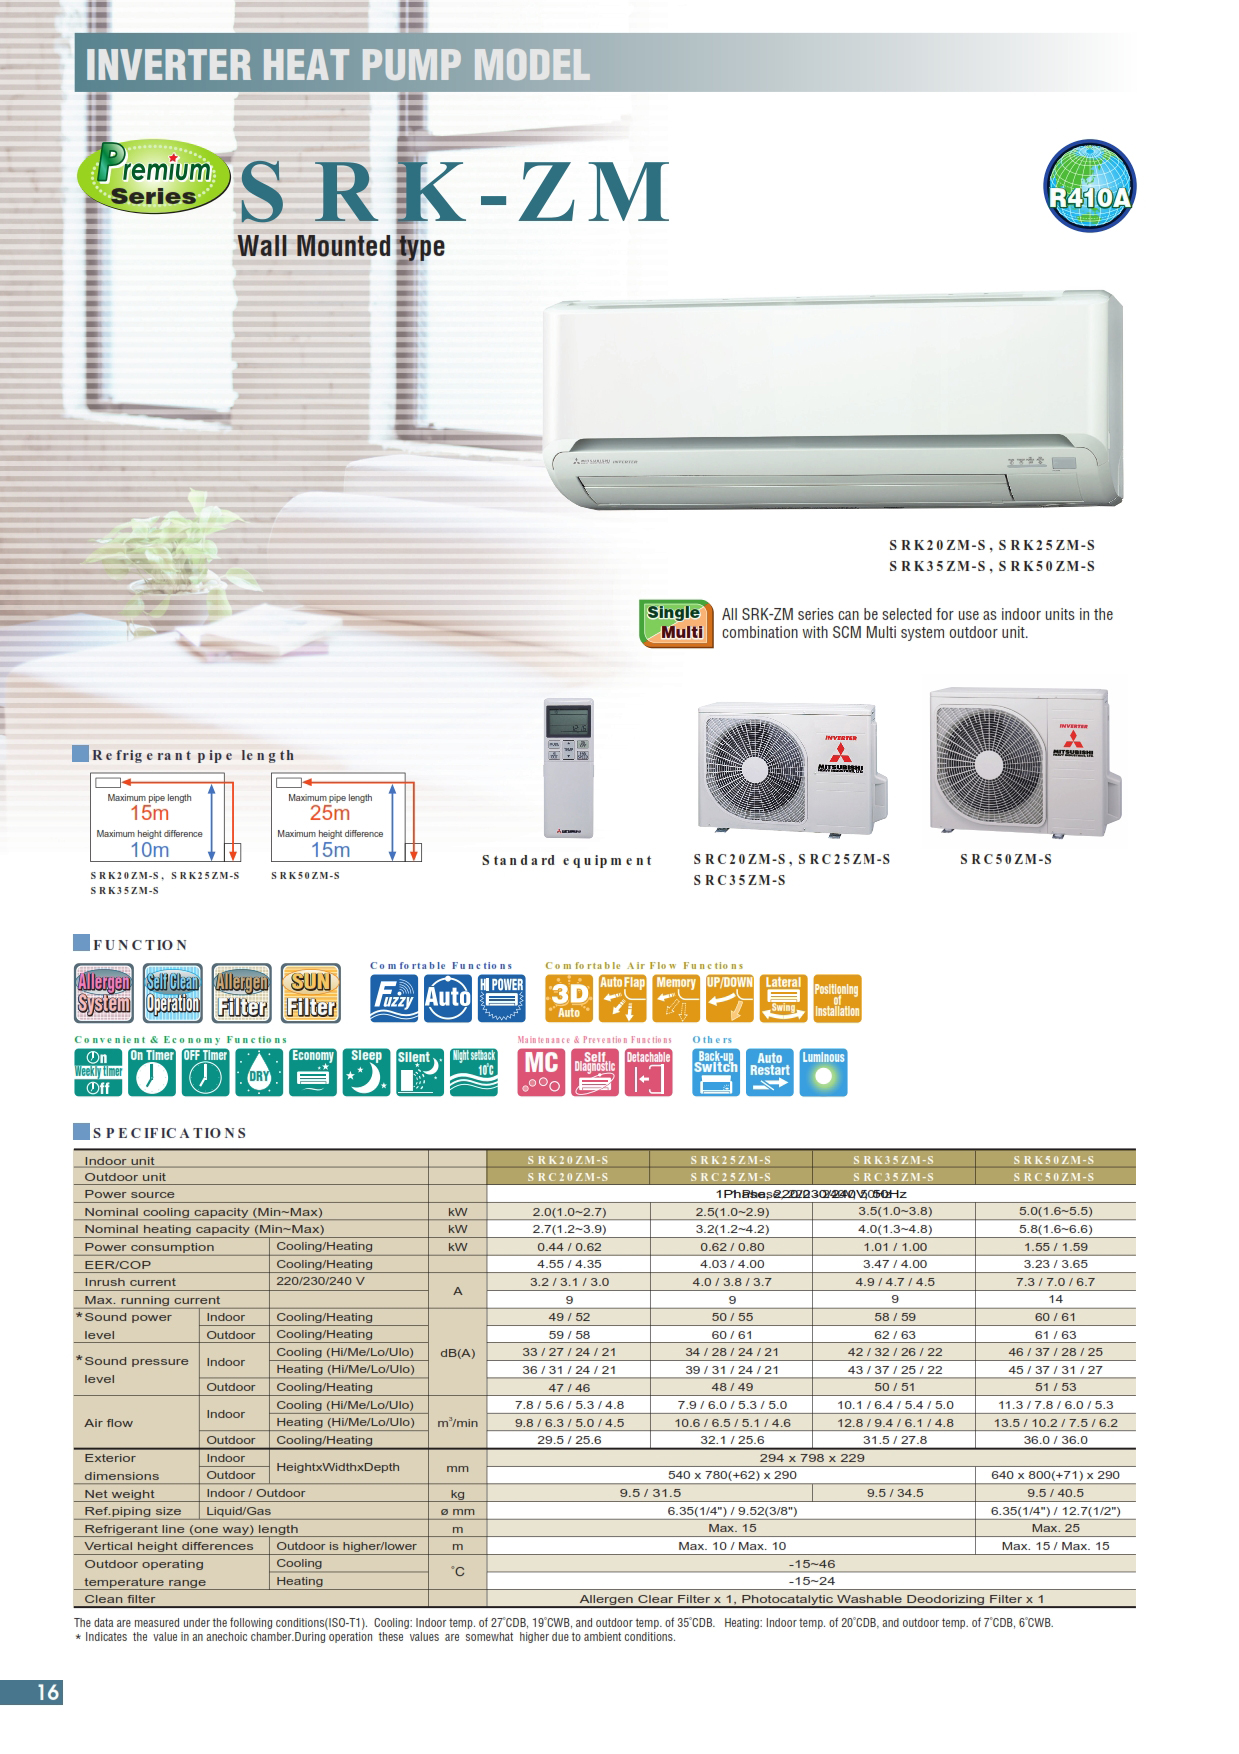 INVERTER HEAT PUMP MODEL SRK-ZM Wall Mounted type